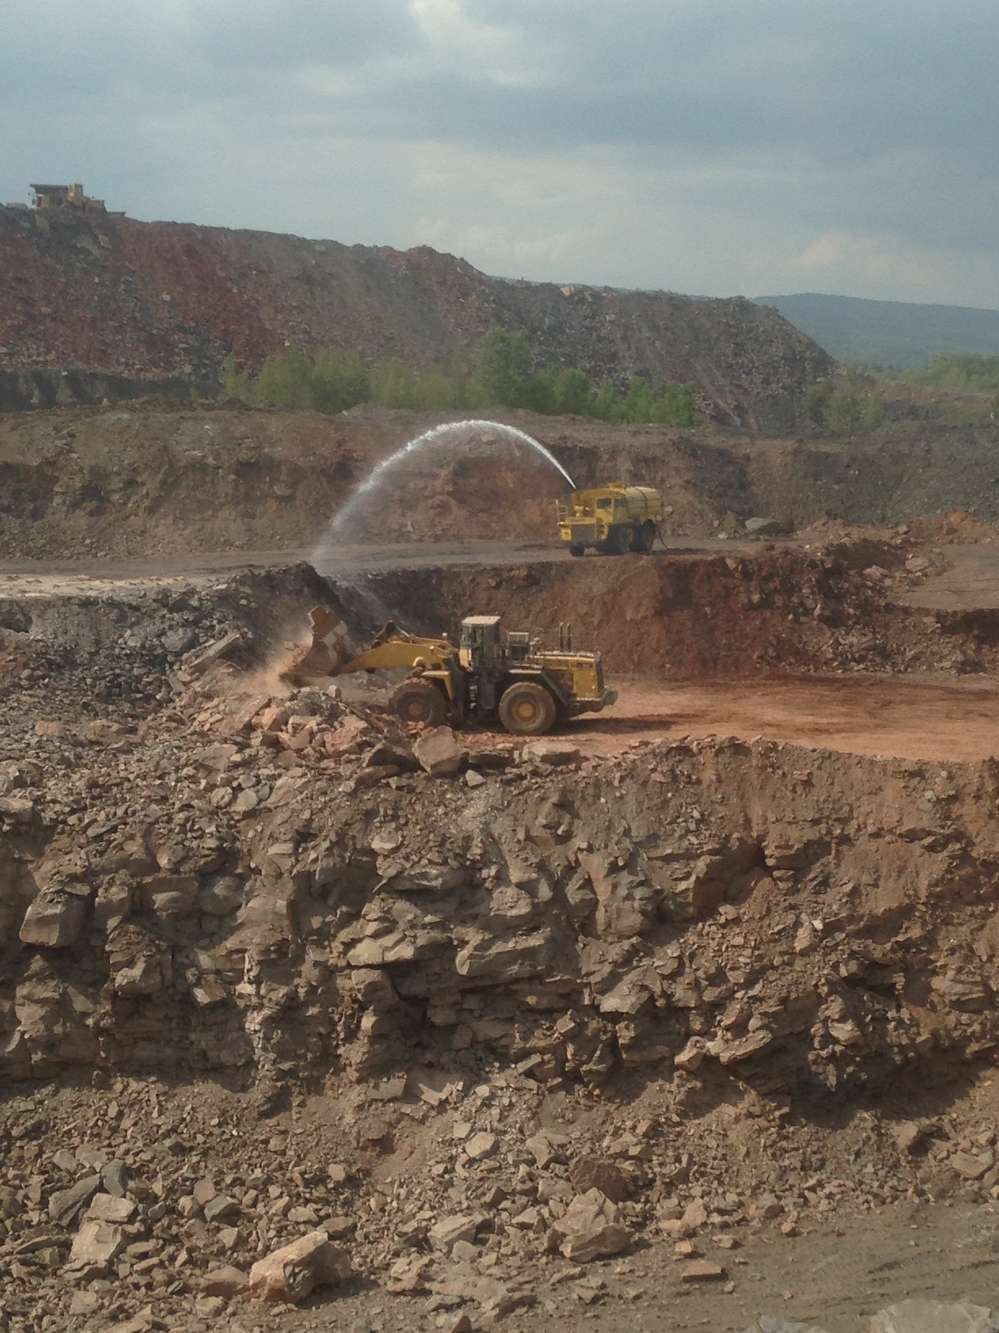 Earthmovers Unlimited Inc. photo. Earthmovers also has constructed an onsite water system with a capacity to hold 500,000 gal. (1.8 million L) to use, along with fire retardant foam, to extinguish the fire.